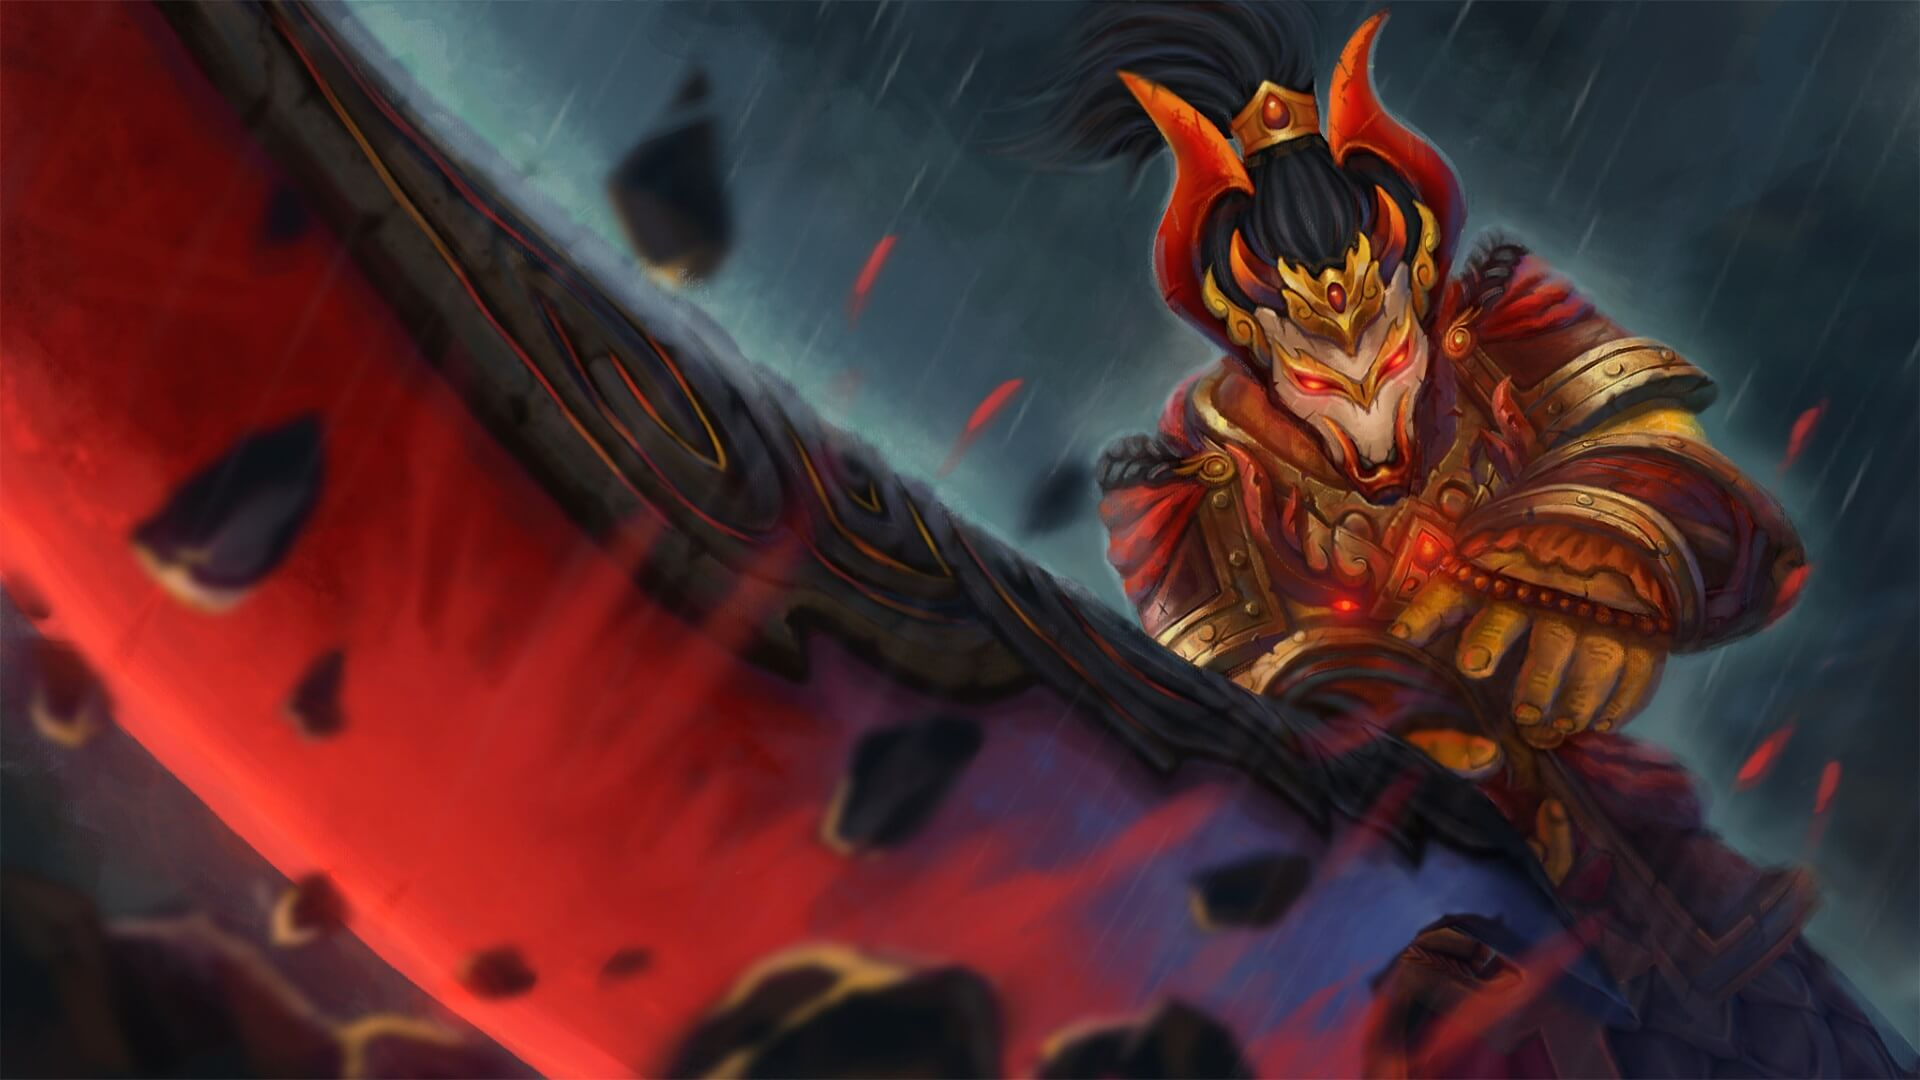 Armor of the Unyielding Mask loading screen for Juggernaut - Valve